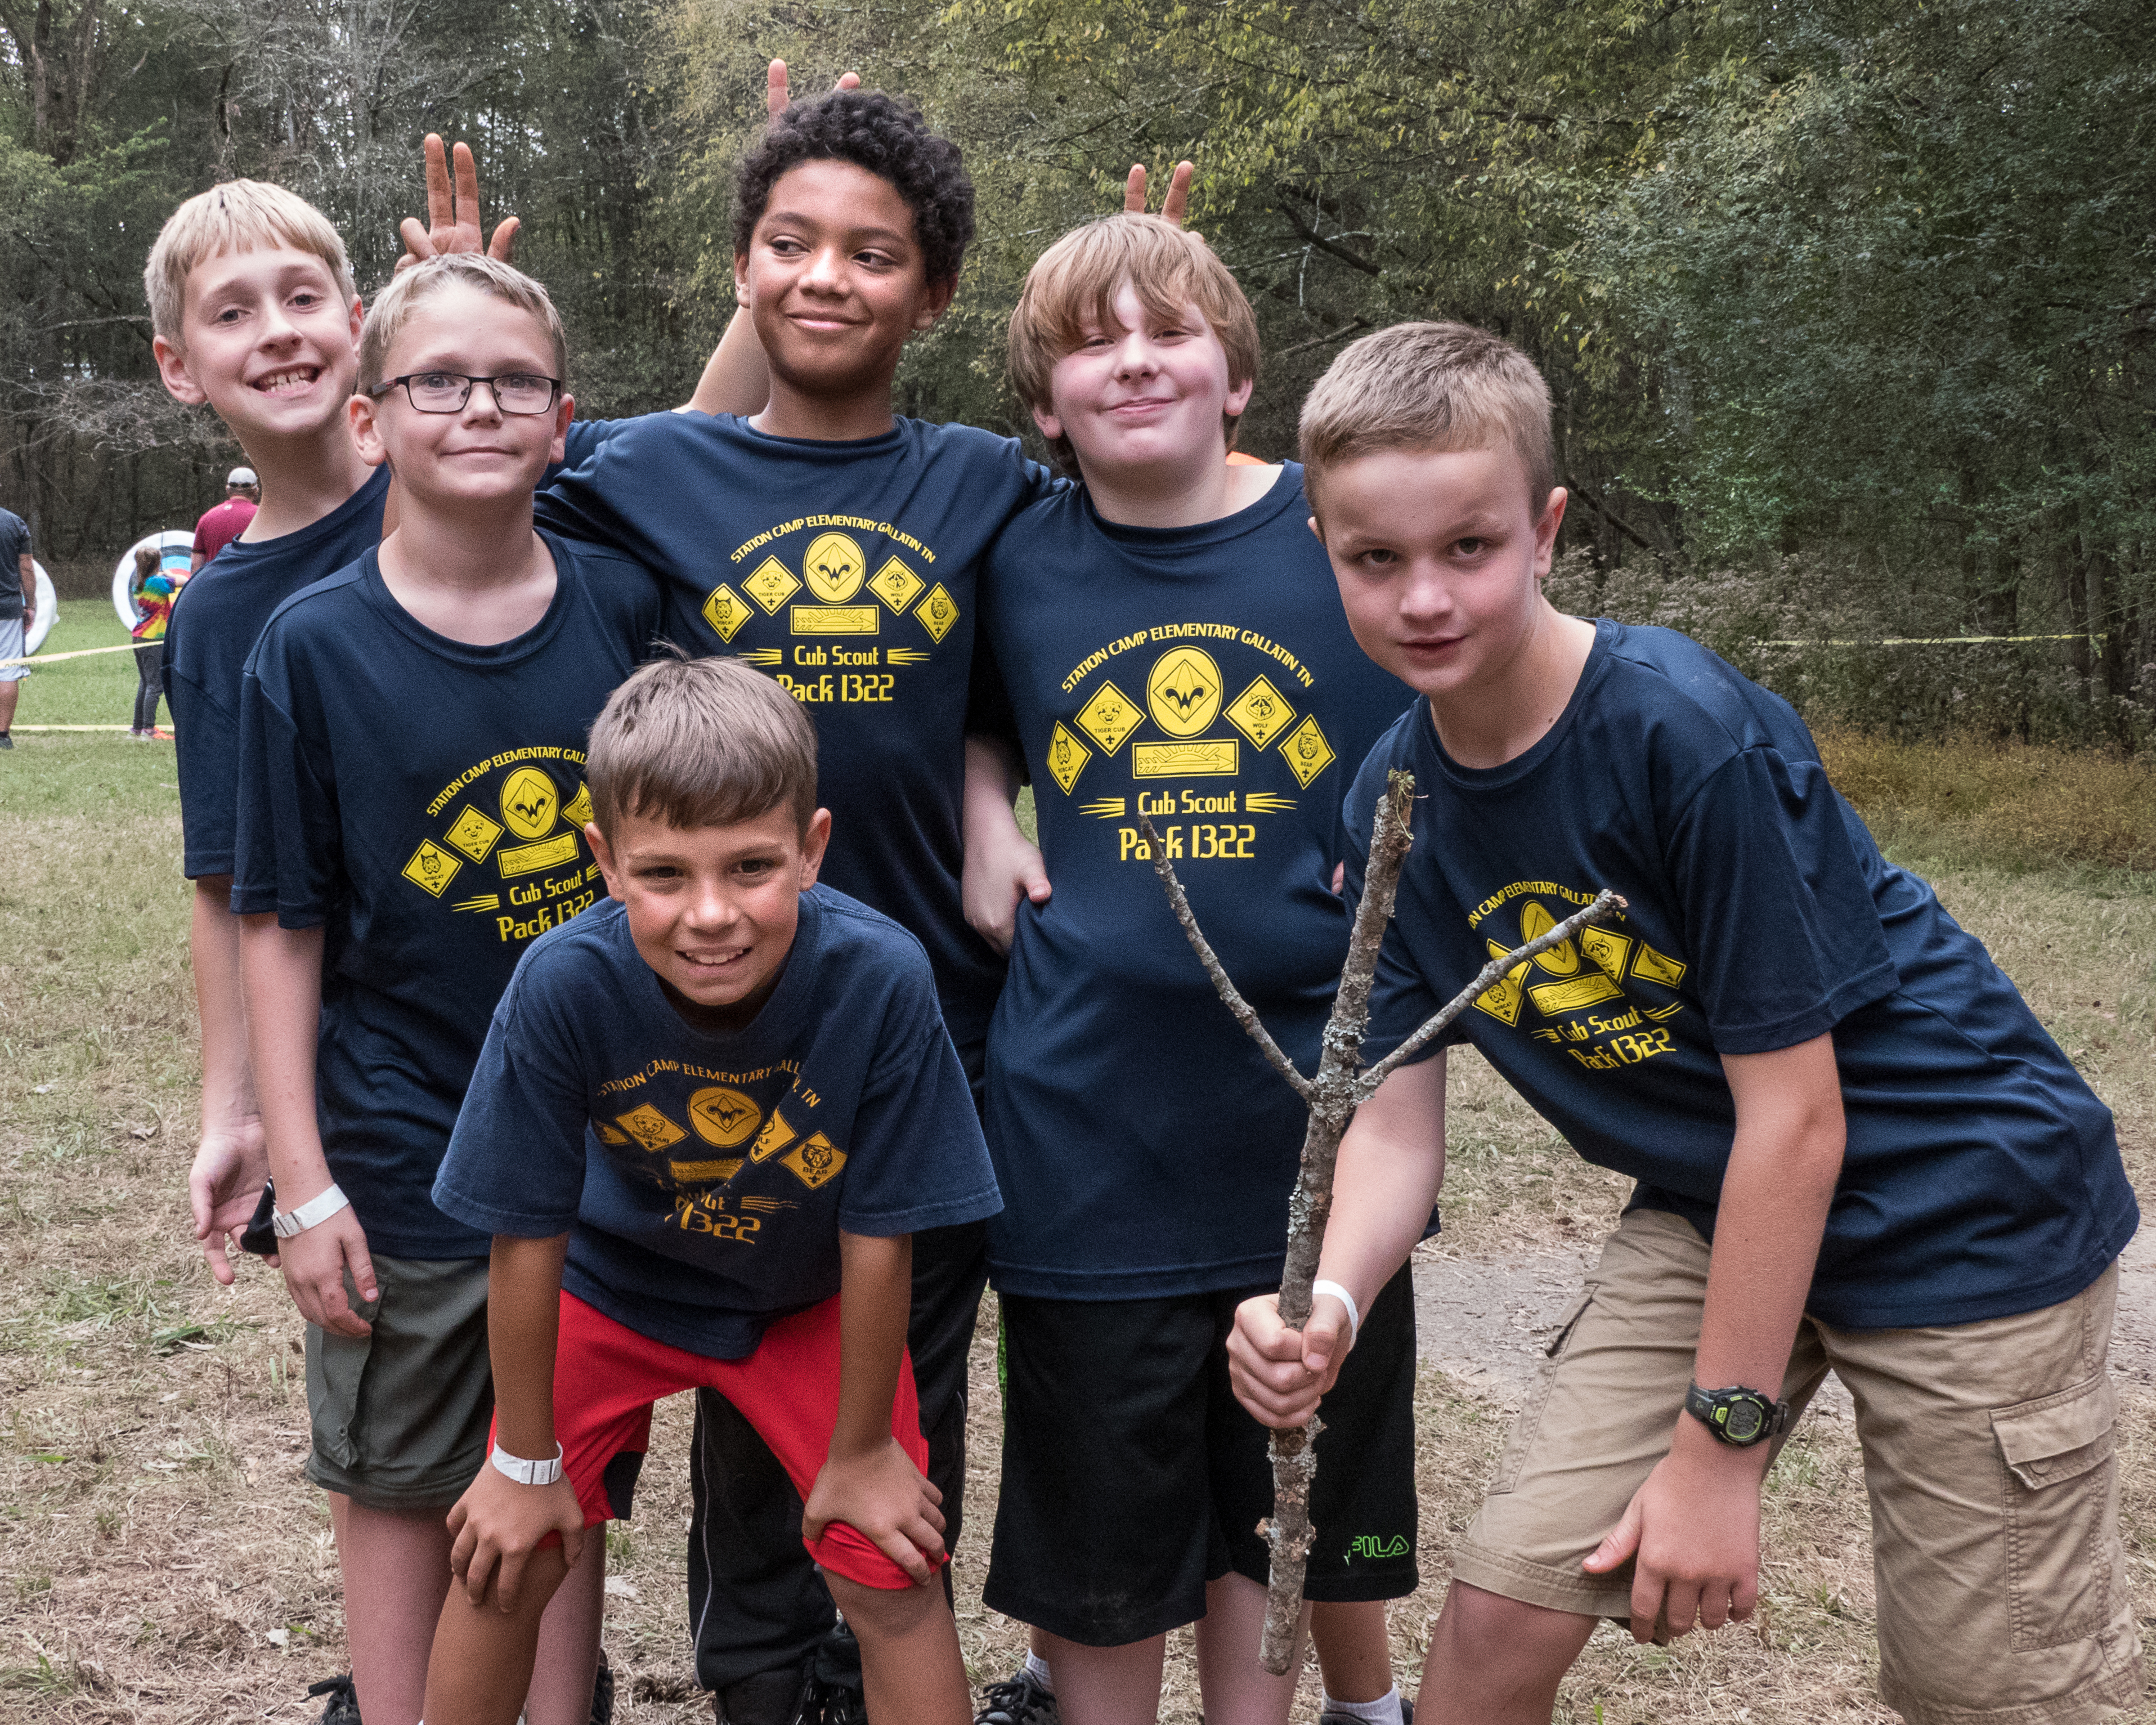 Cub Scout Camp | Middle Tennessee Council Boy Scouts